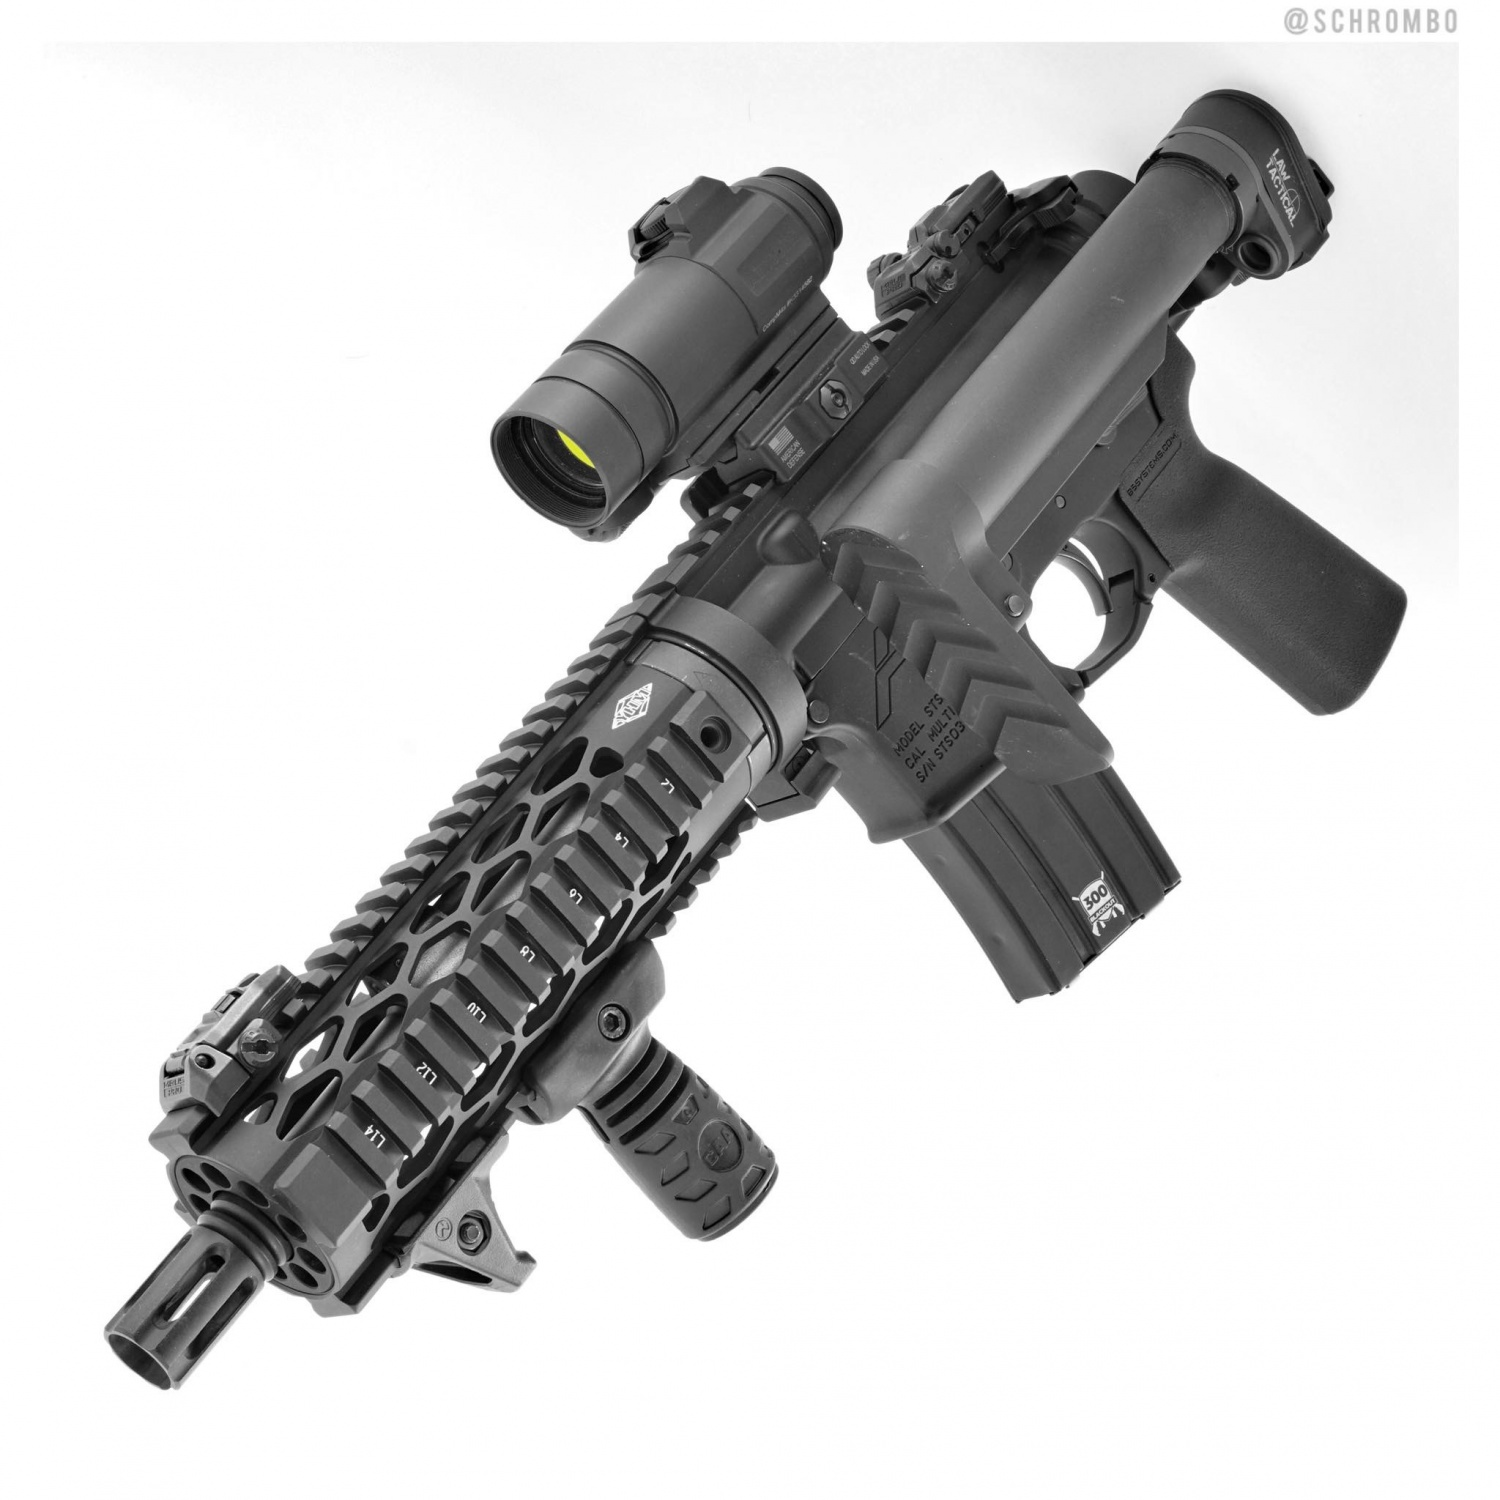 300 Blackout with LAW Tactical and Dolos Take-Down